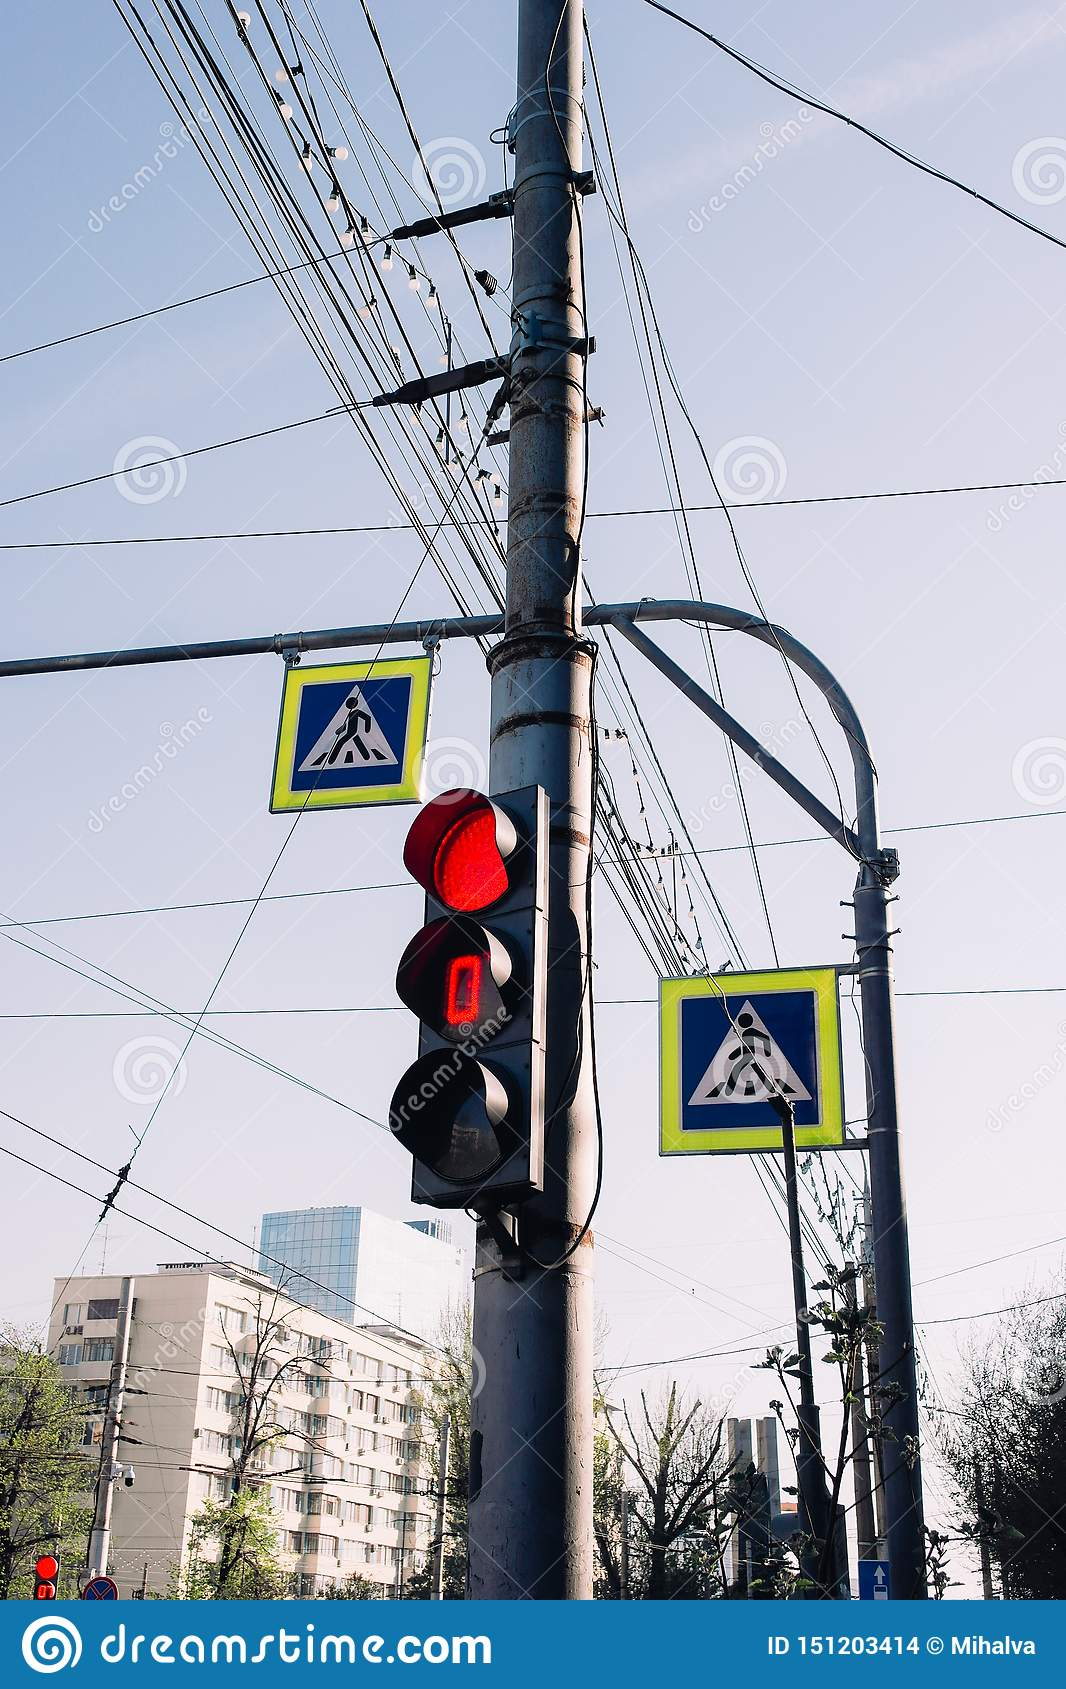 The traffic lights and street signs